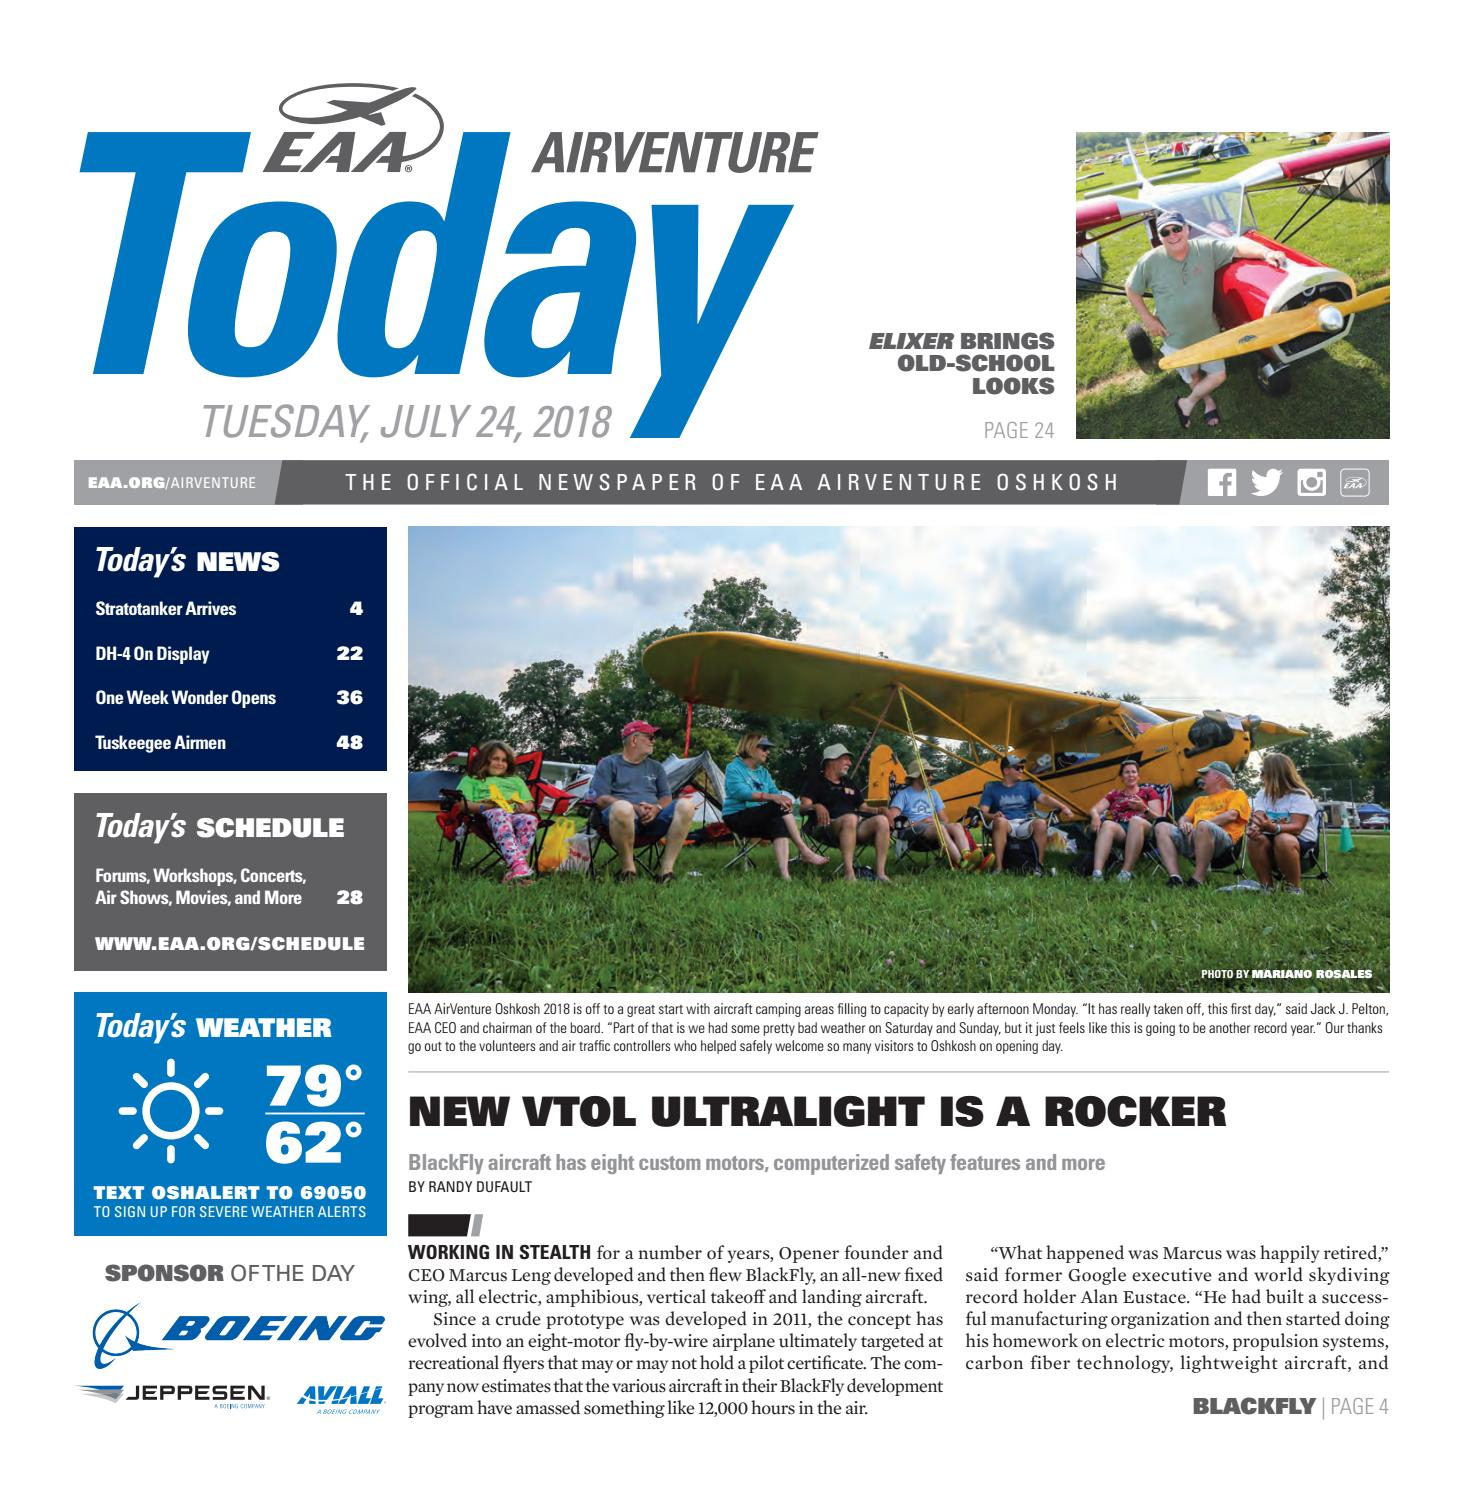 EAA AirVenture Today - Tuesday, July 24, 2018 by EAA